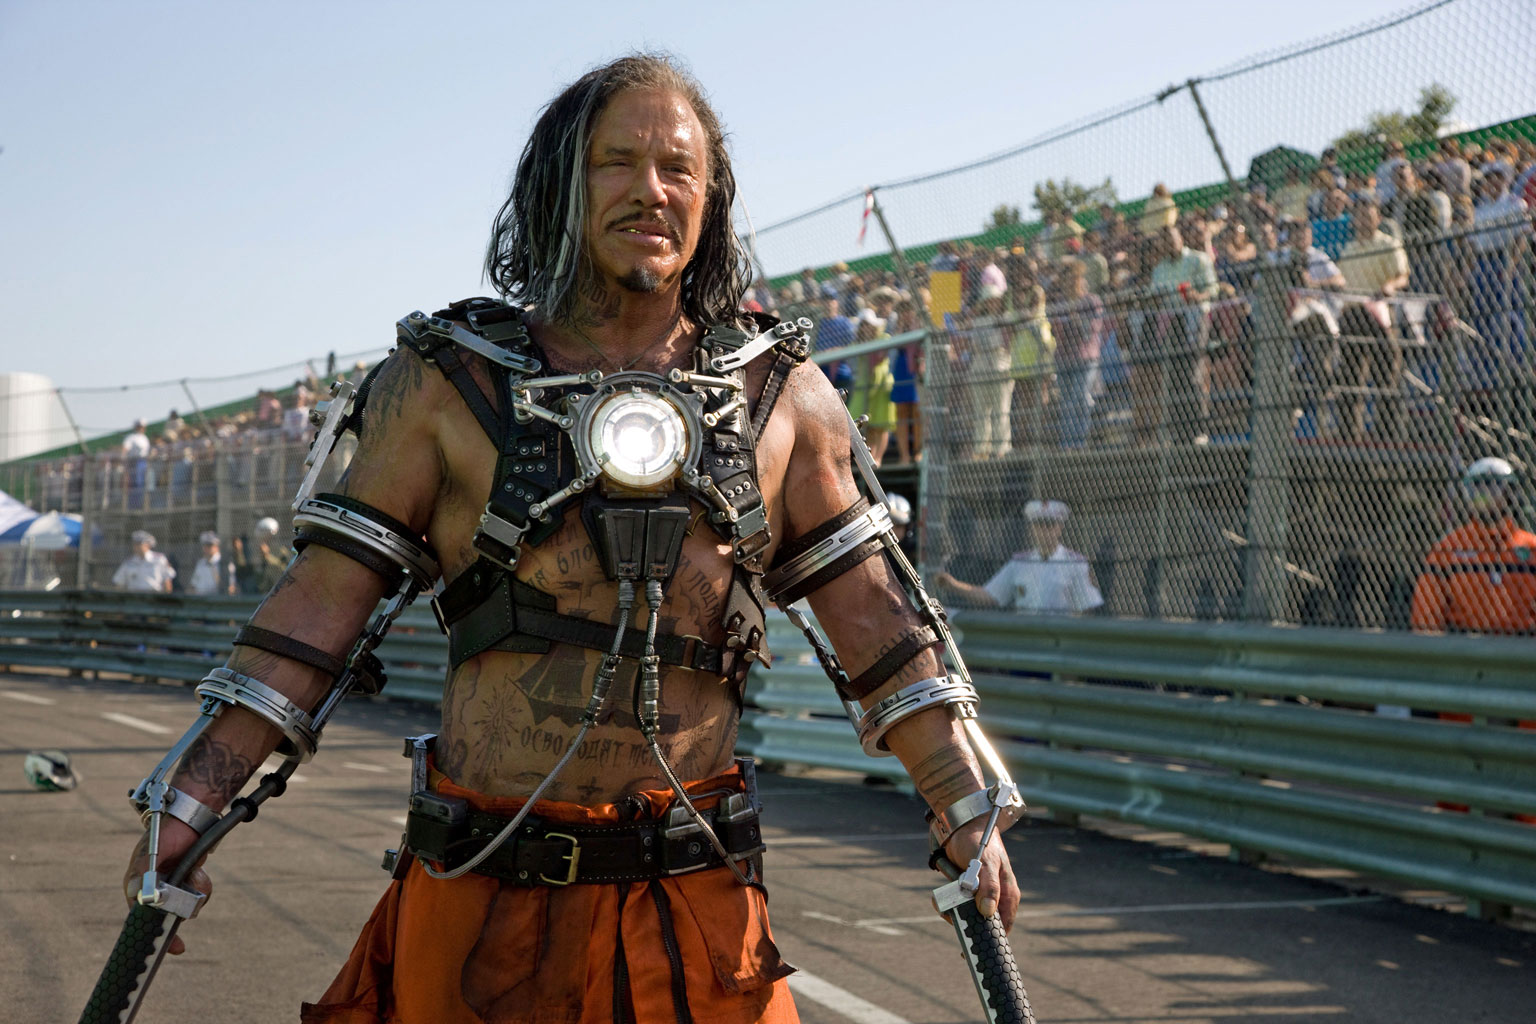 Mickey Rourke as Ivan Vanko/Whiplash in Iron Man 2 (2010)